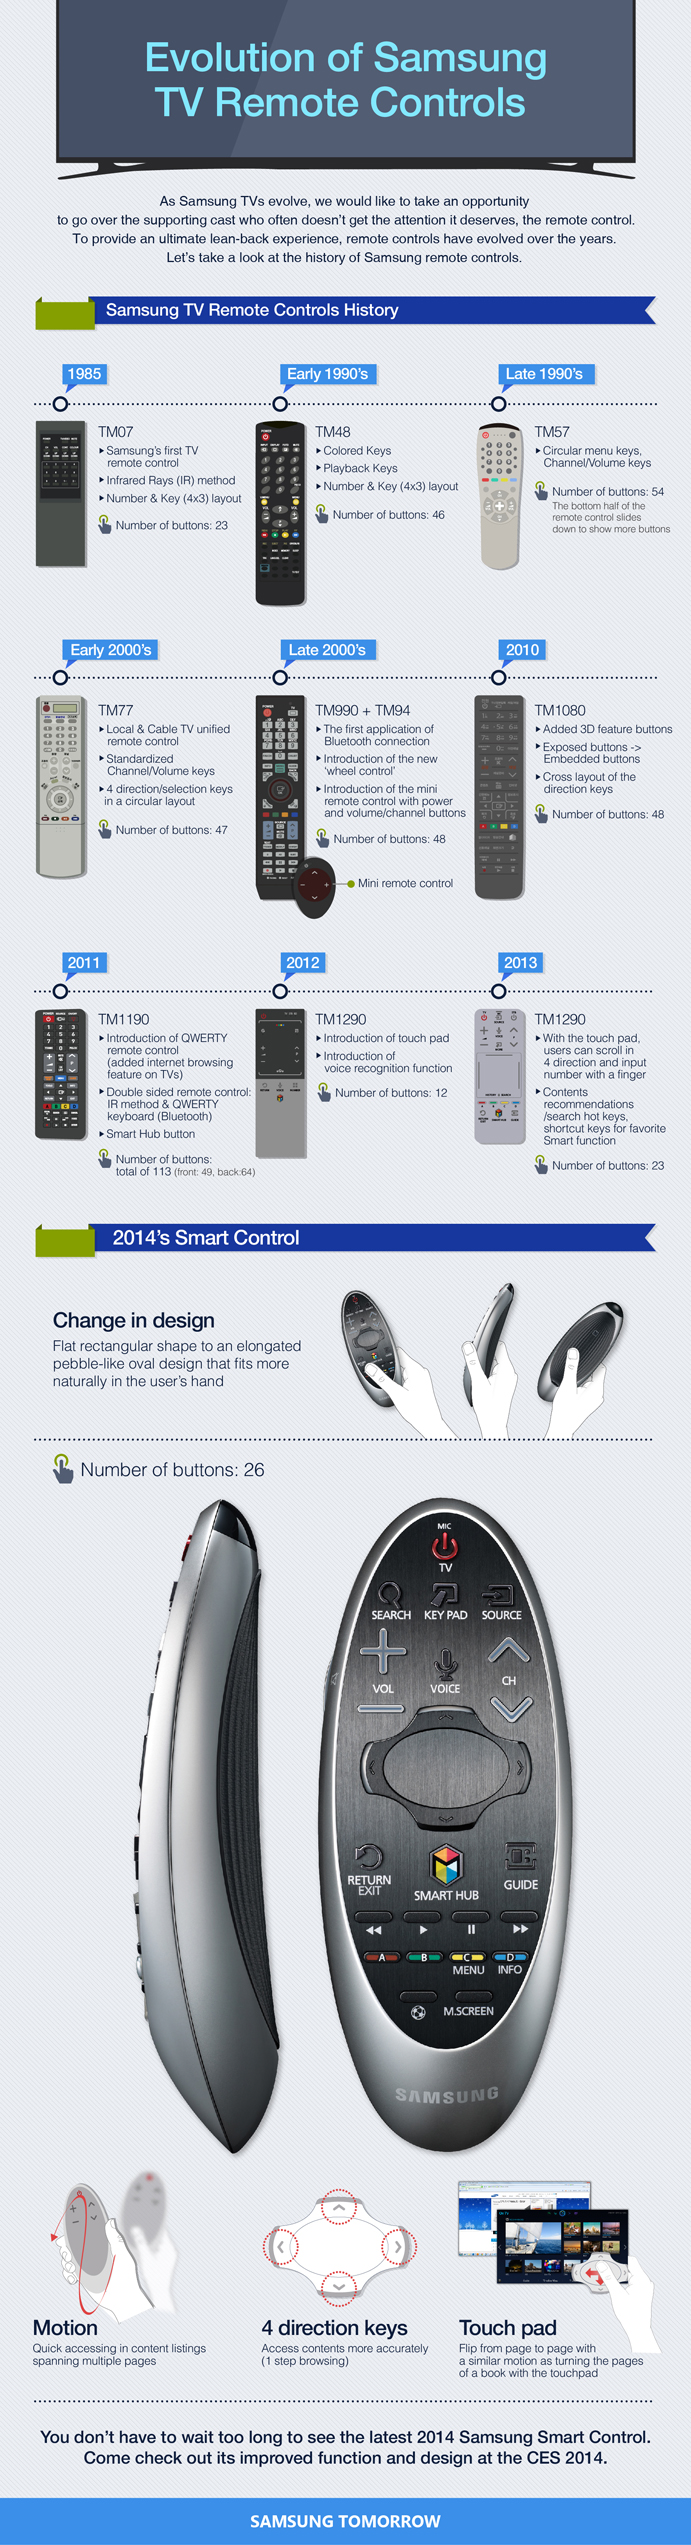 Infographic: Evolution of Samsung TV Remote Controls